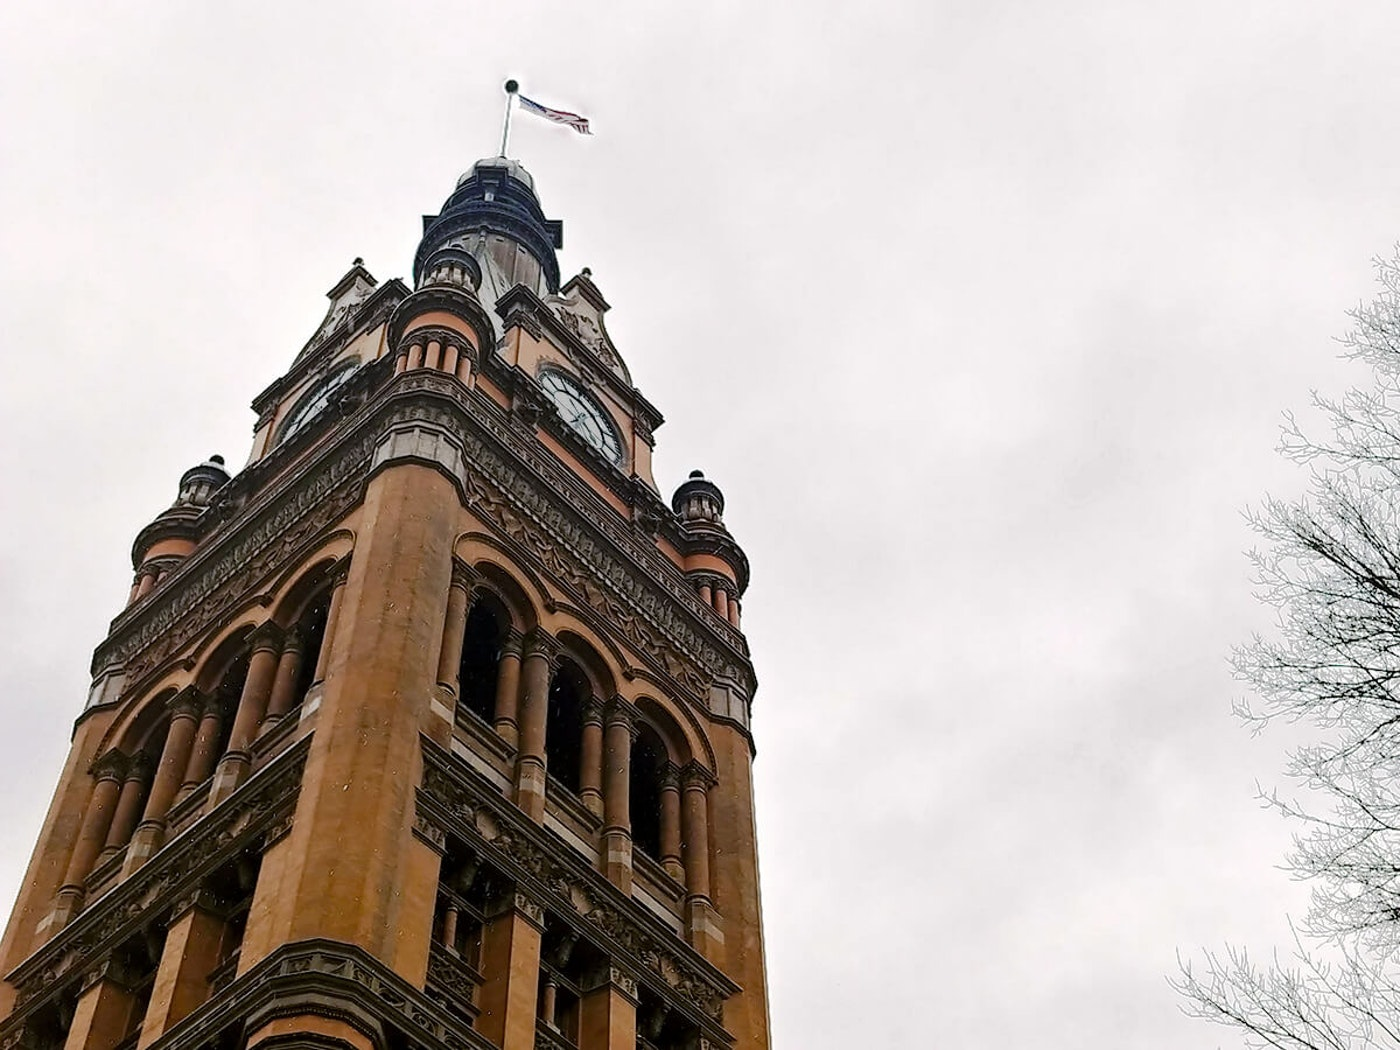 Milwaukee Will Give Hazard Pay to All Frontline City Employees